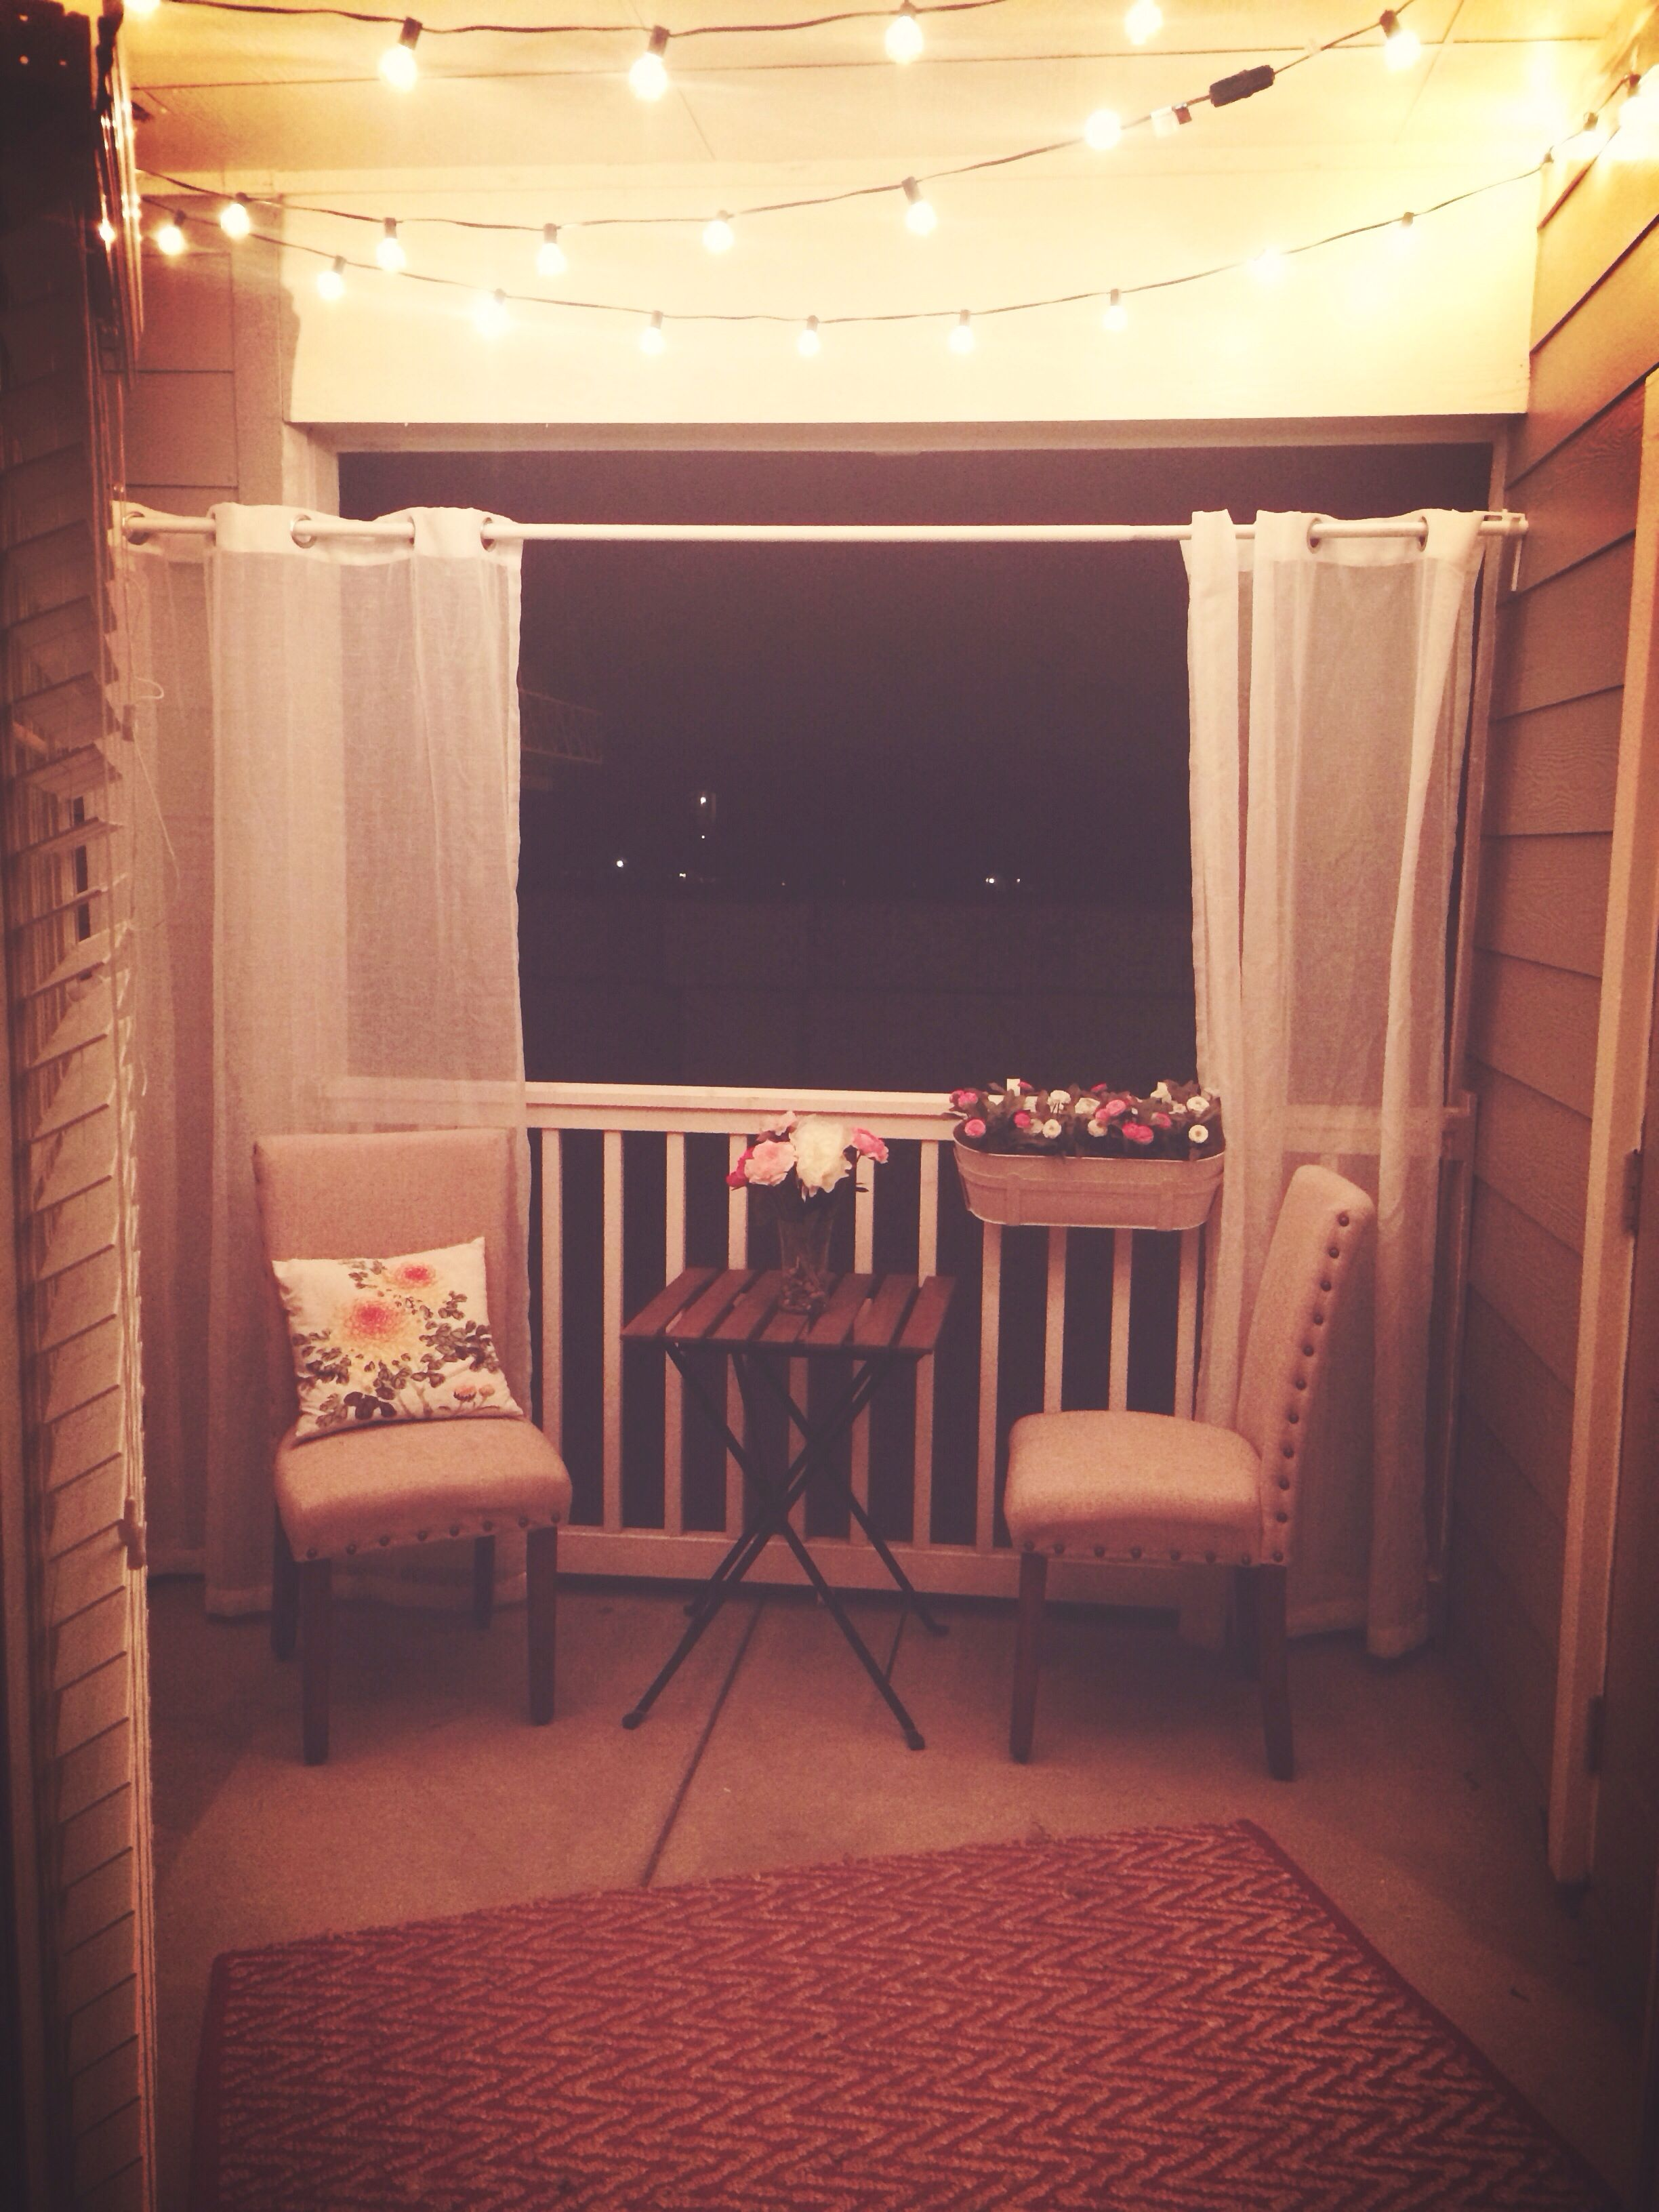 Curtain For Balcony: Small Apartment Patio With Lights Strung At Night